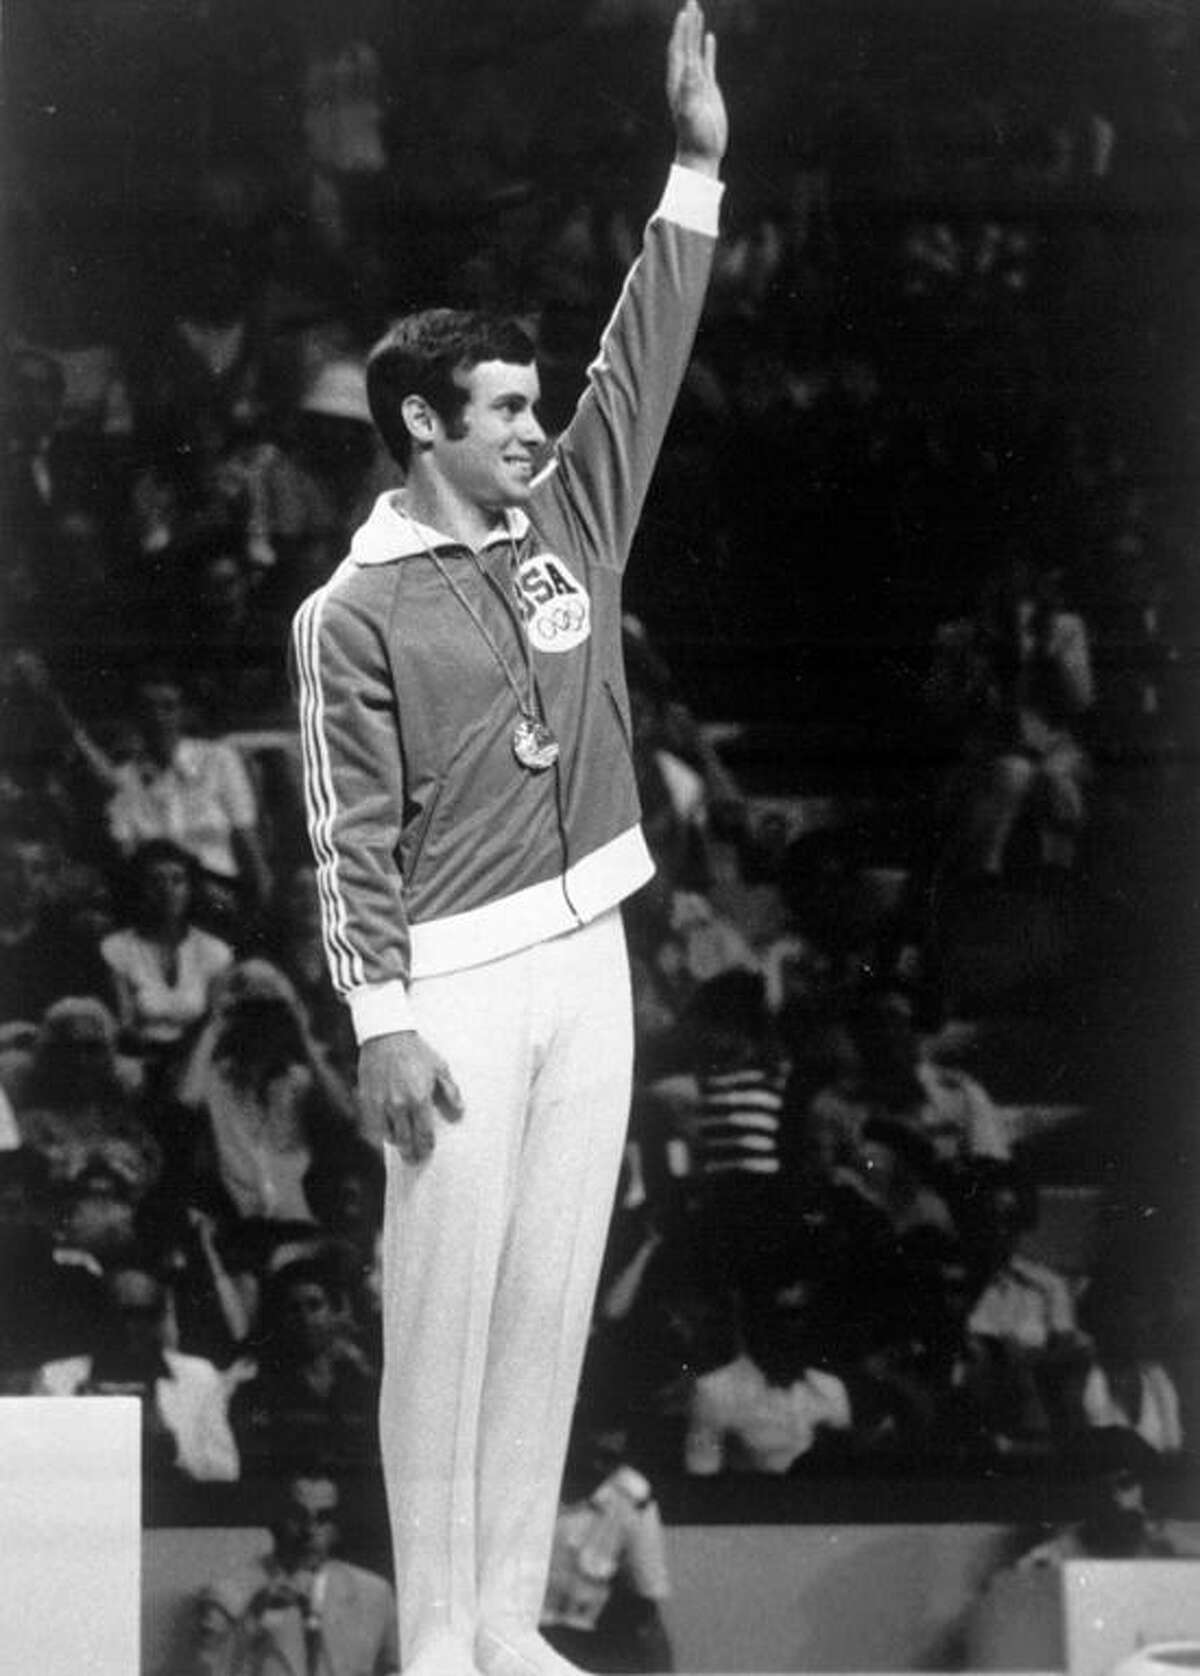 Peter Kormann acknowledges the applause of the crowd after being awarded the bronze medal in the men's floor exercise in this 1976 file photo. (AP Photo/File)